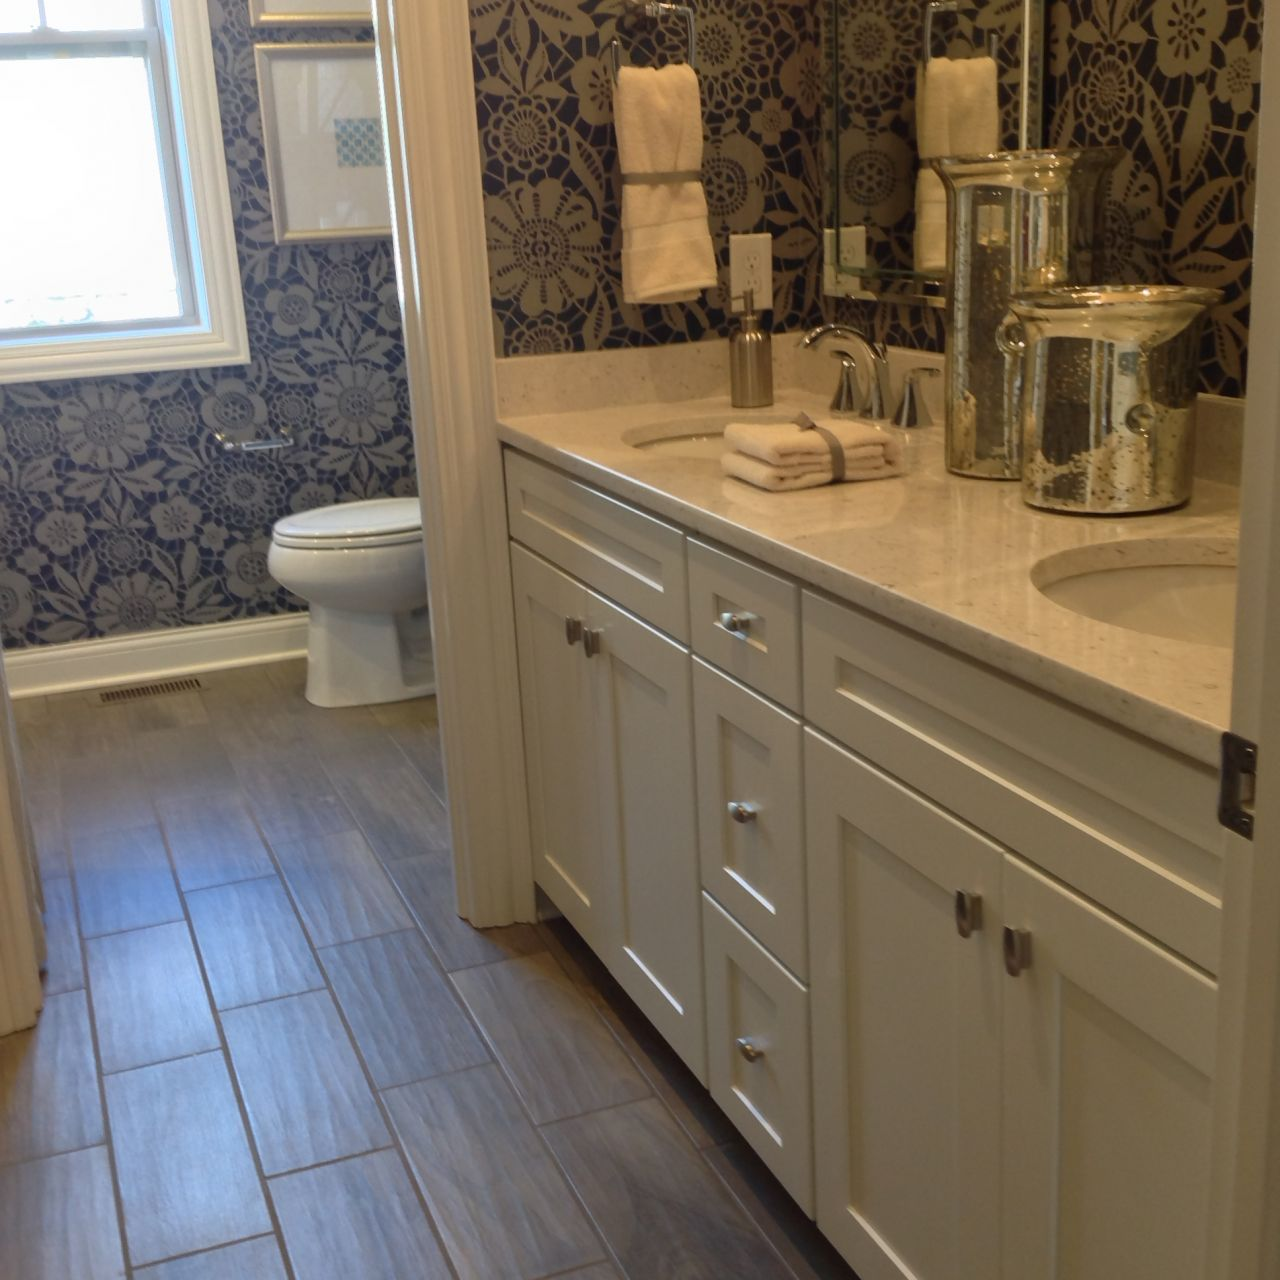 Bathroom Tiles Trends 2015 5 bathroom trends you'll see at 2015 columbus bia parade of homes